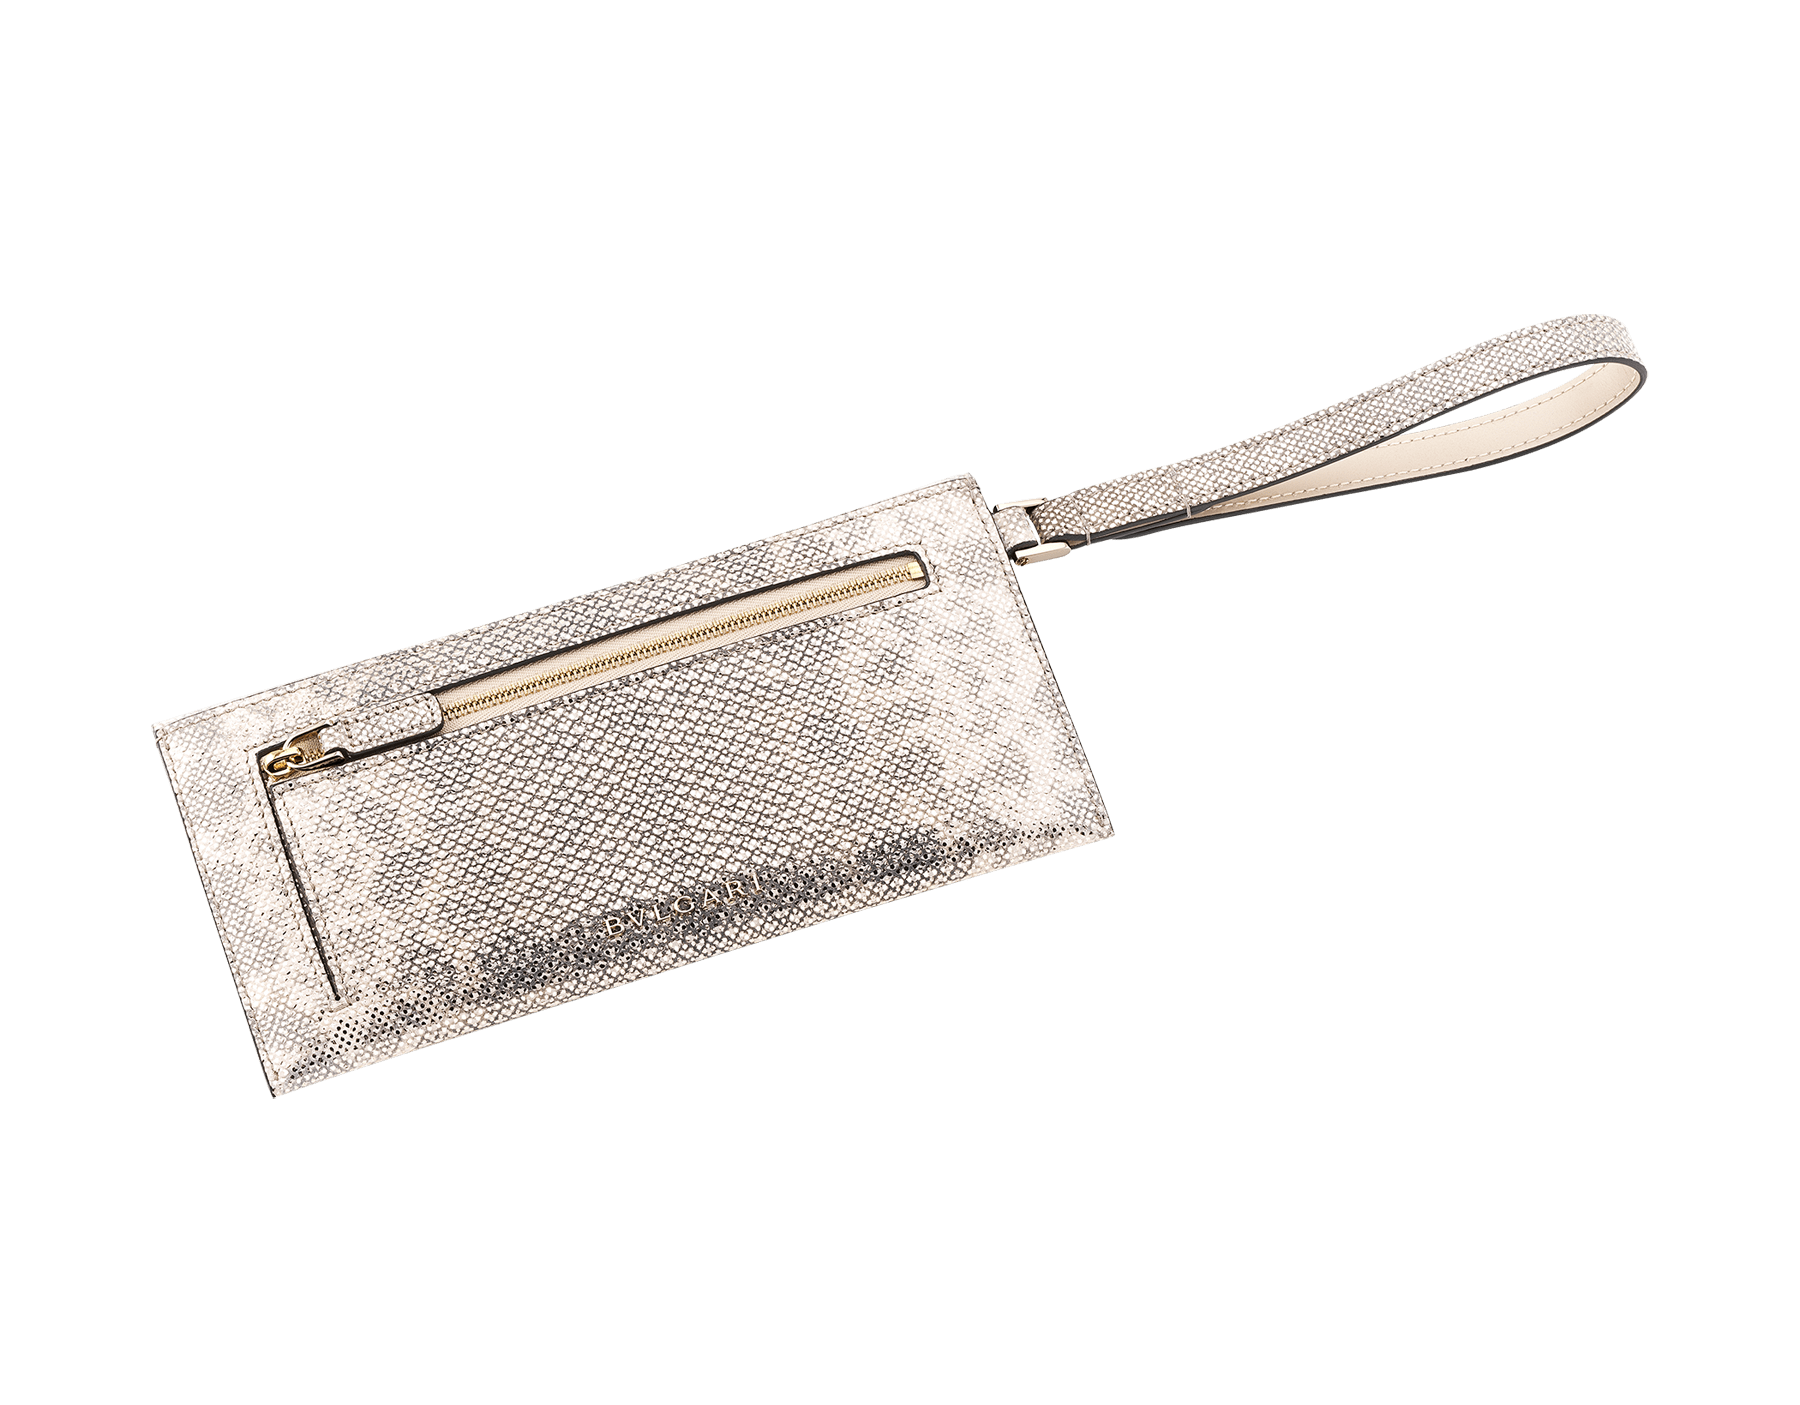 Serpenti Forever envelope case in milky opal metallic karung skin and milky opal calf leather. Iconic snakehead stud closure in black and glitter milky opal enamel, with black onyx eyes. SEA-ENVELOPE-MK image 3